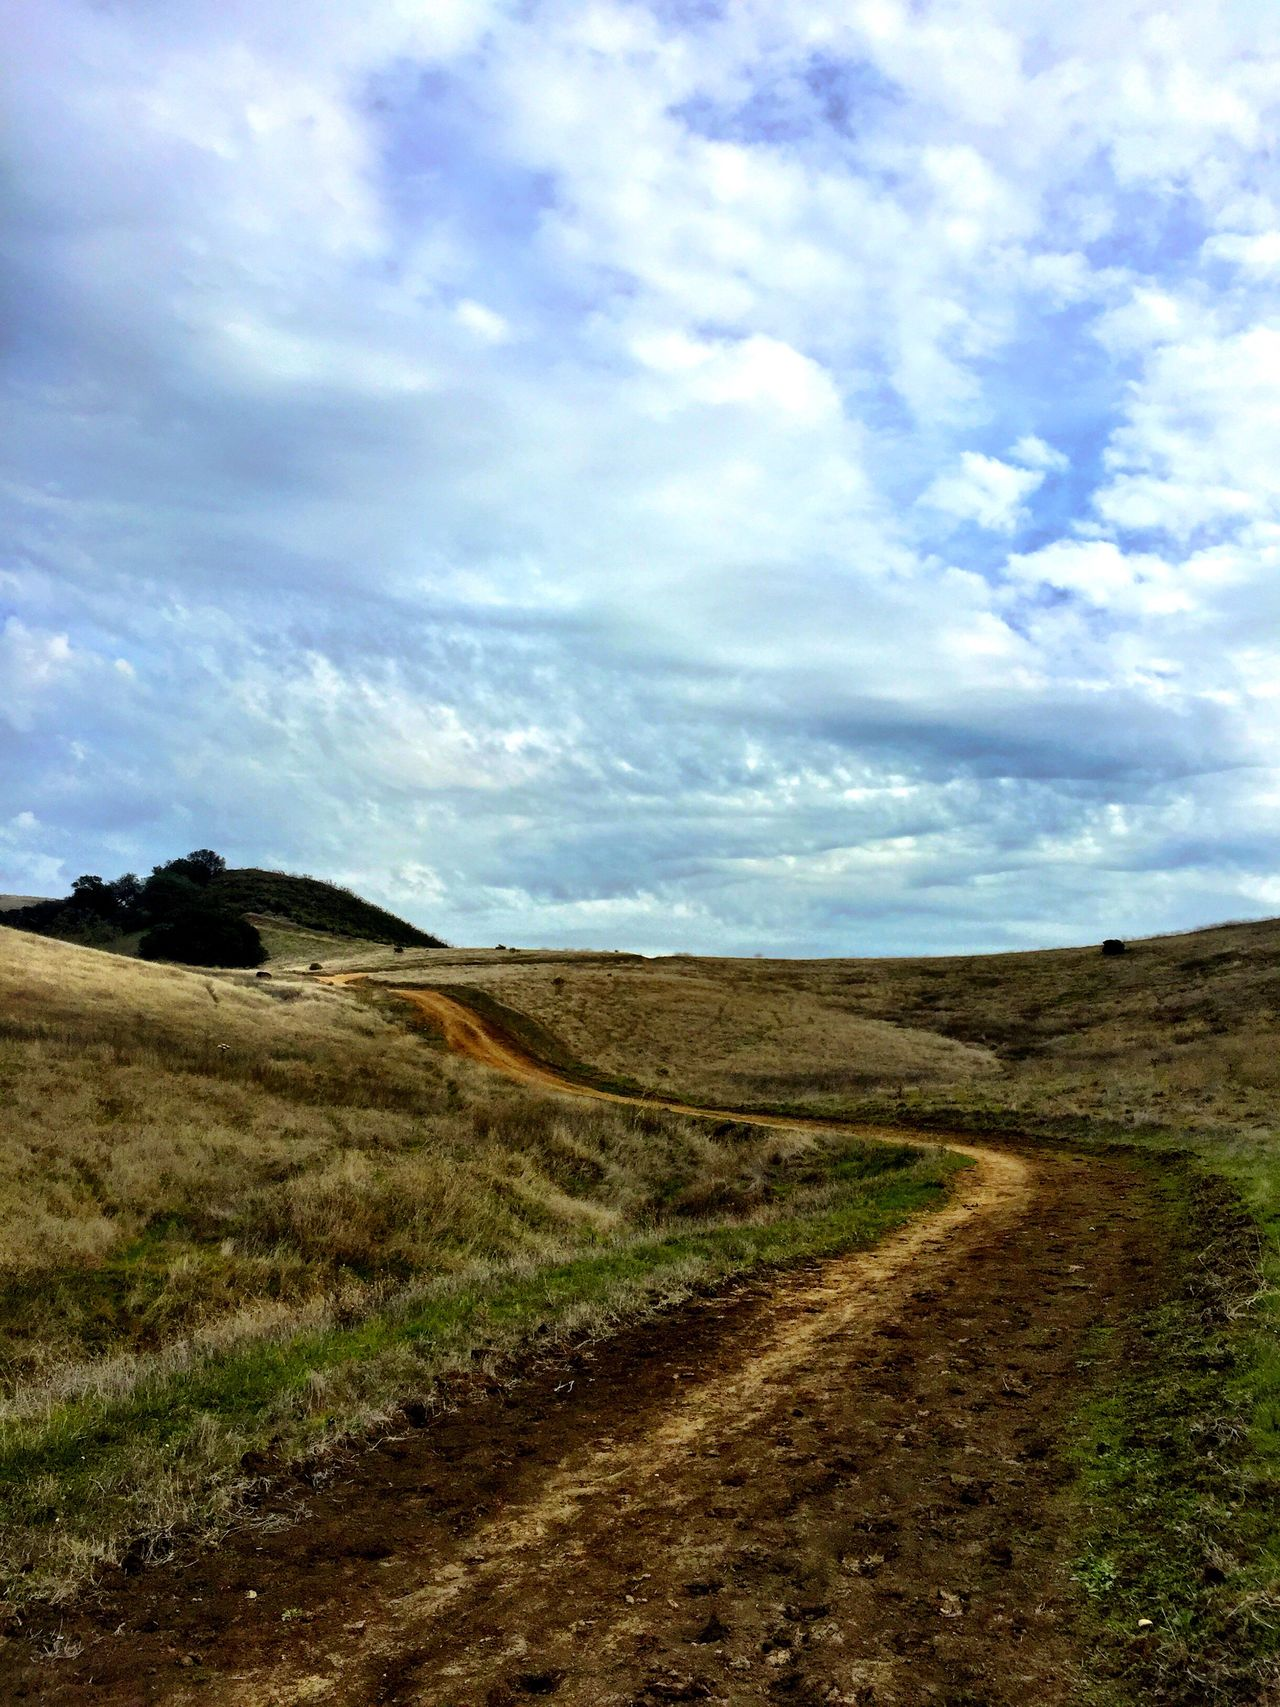 """""""The Road Less Traveled"""" A fire road utilized by horses, humans and mountain bikes, meanders through the Lime Ridge Open Space in Walnut Creek, California. Roads Backroads Openspace Exploring"""